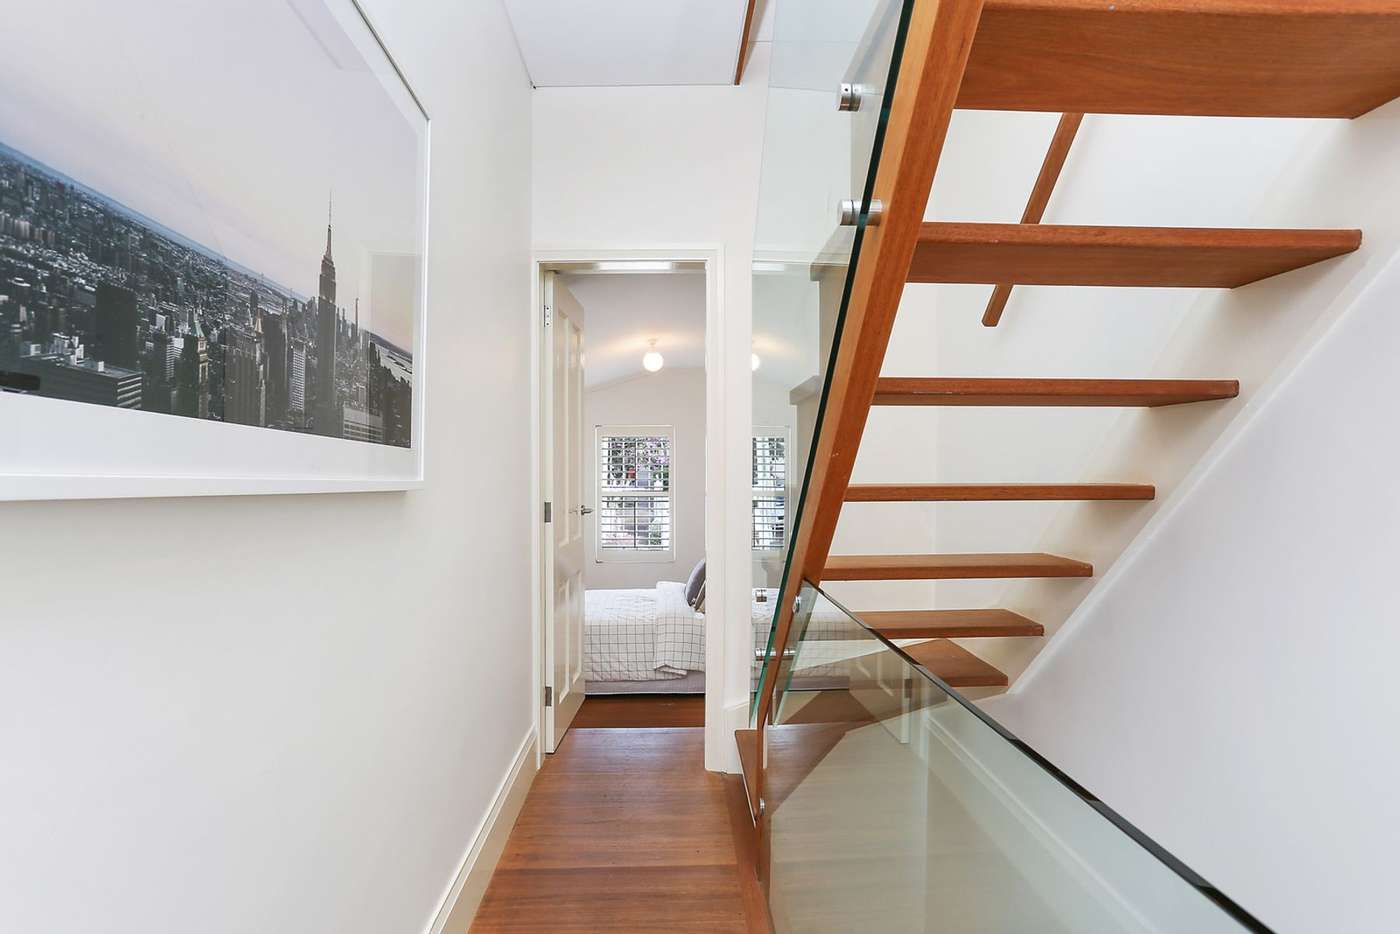 Fifth view of Homely house listing, 21 Olive Street, Paddington NSW 2021